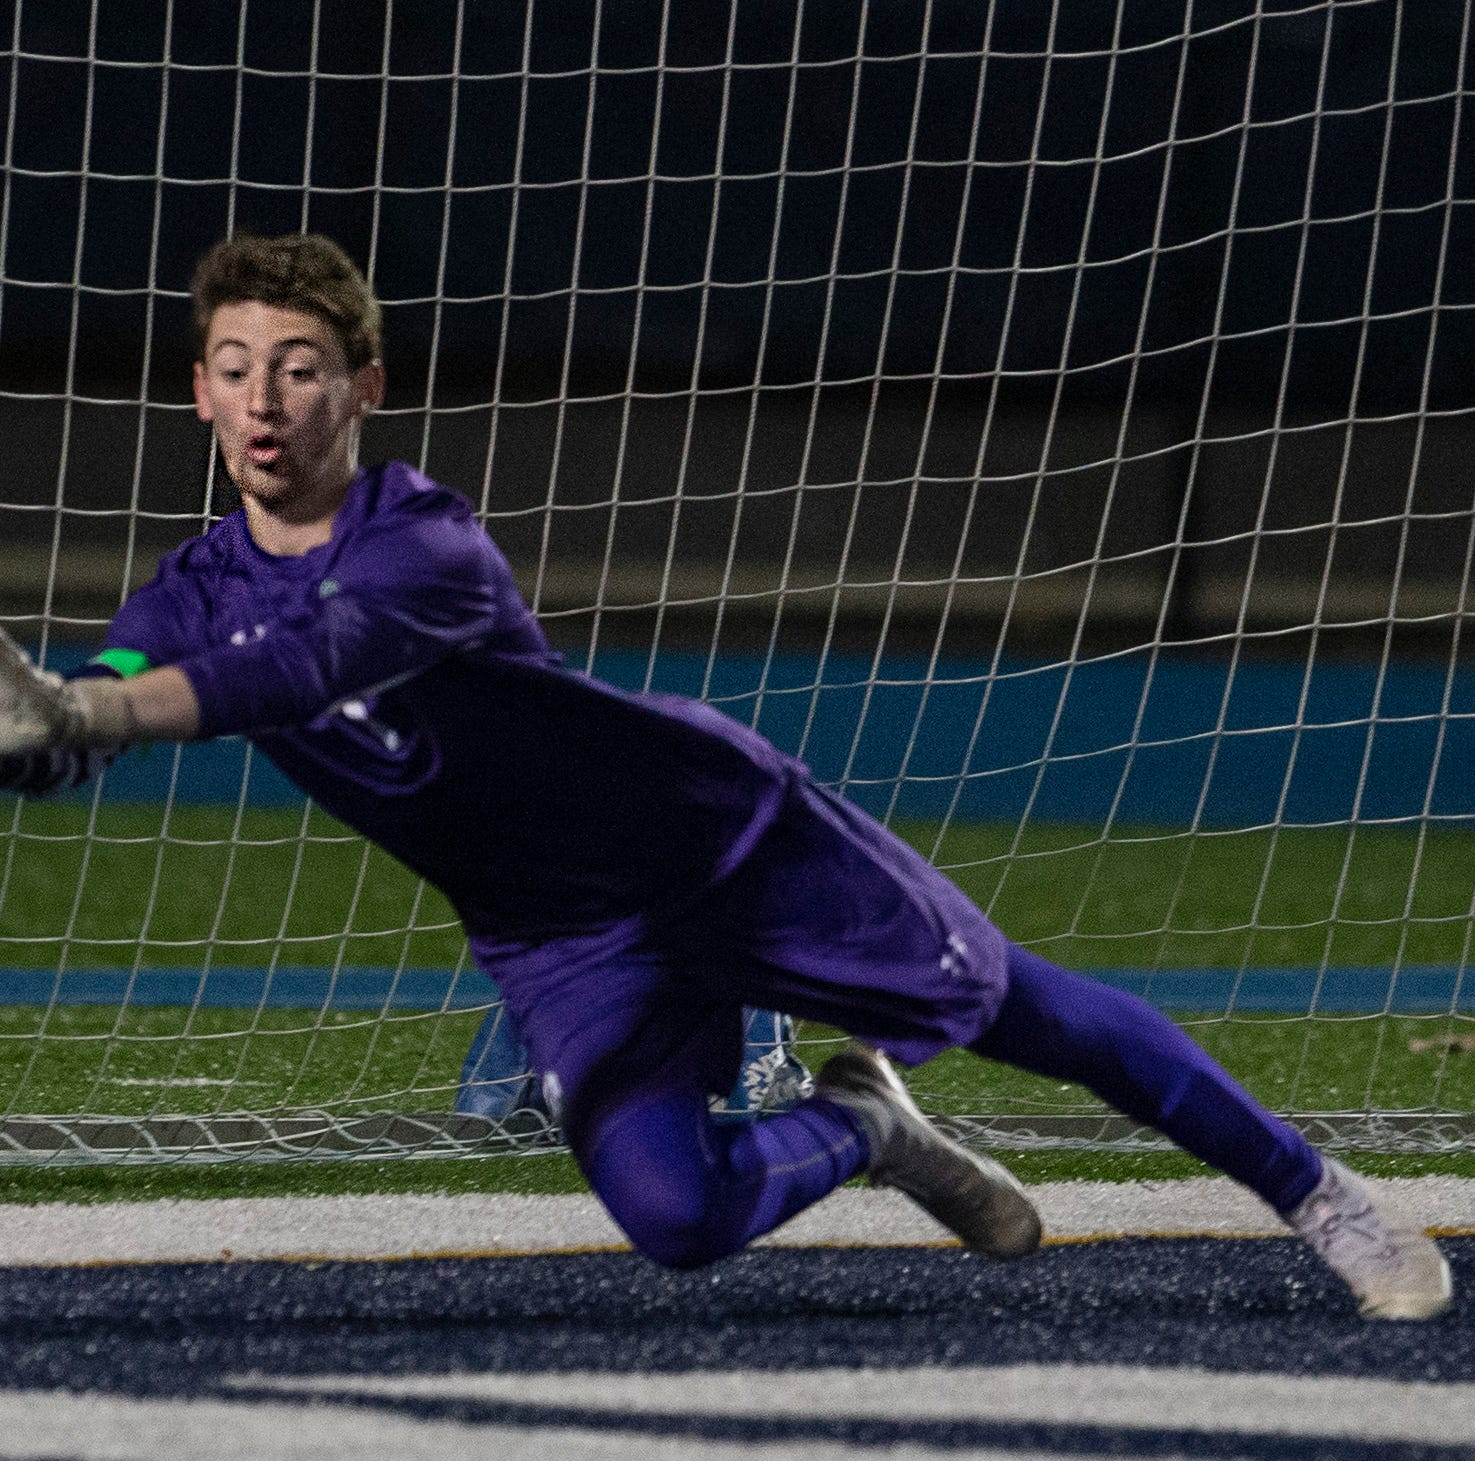 Delbarton's goalie Kyle Swift tries but can push away game winning goal during closing minute of second overtime. Christian Brothers Academy defeat Delbarton 2-1 in overtime during NJISSA Boys Non-public A State Soccer Final